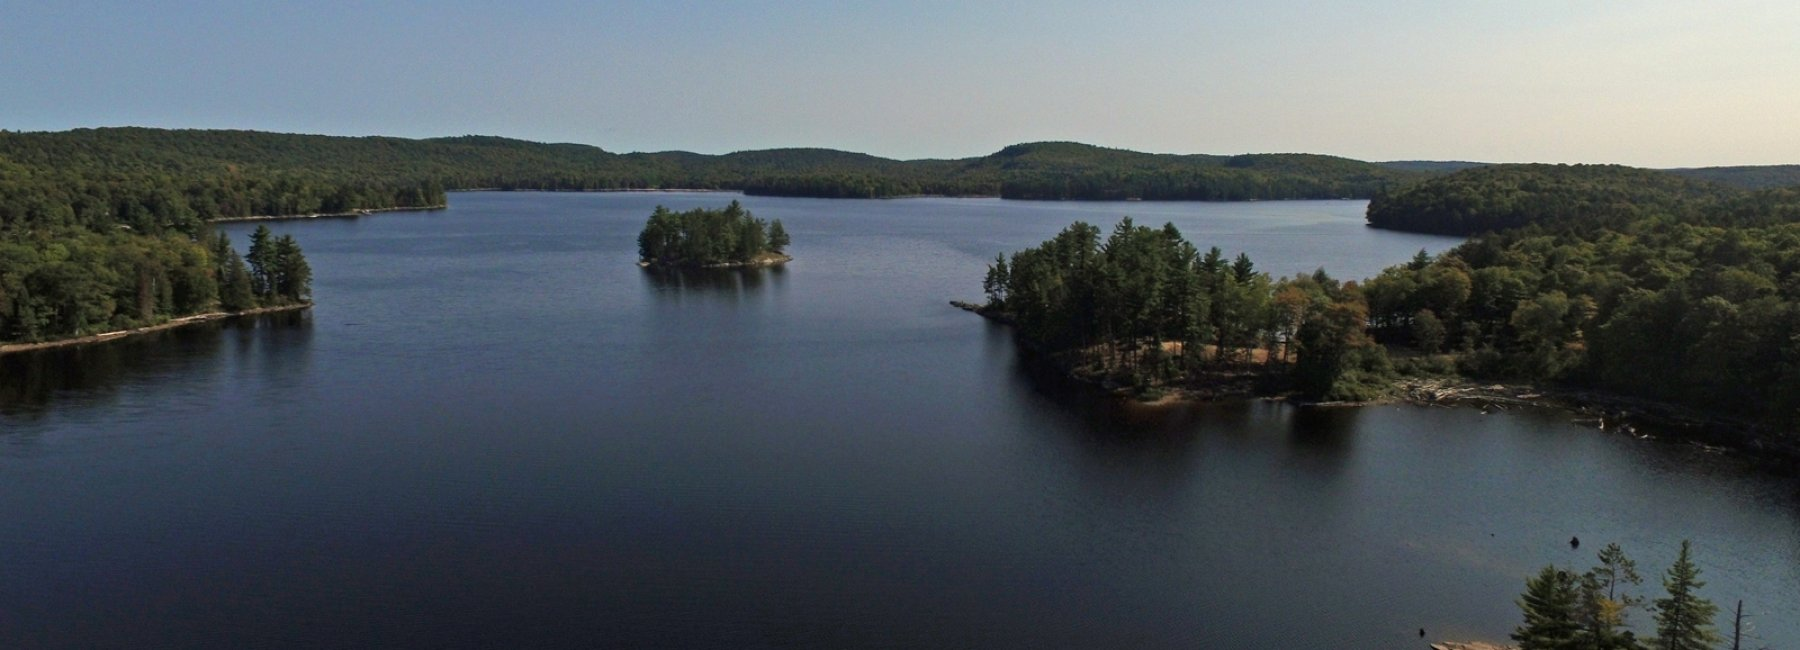 Lot 33, Alpine Ridge Road, Percy Lake, Haliburton